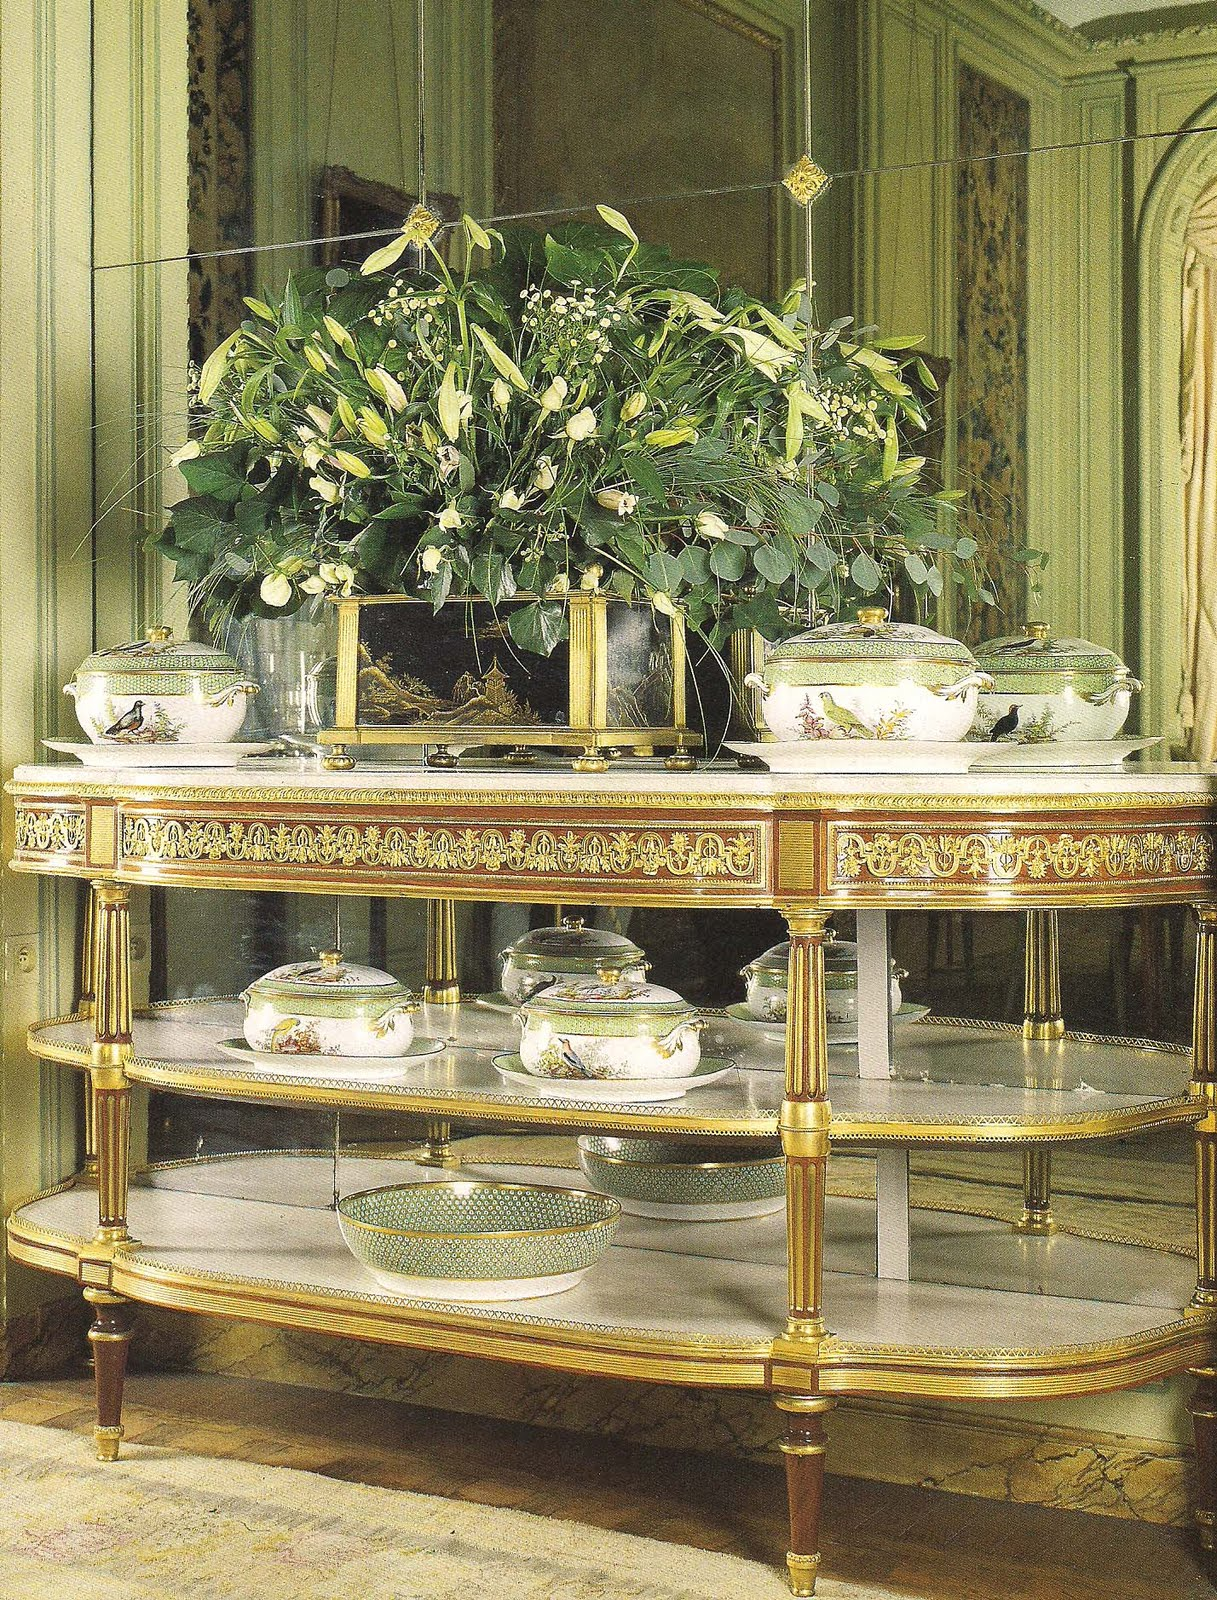 Ebeniste Mont De Marsan the devoted classicist: highlights of the camondo collection